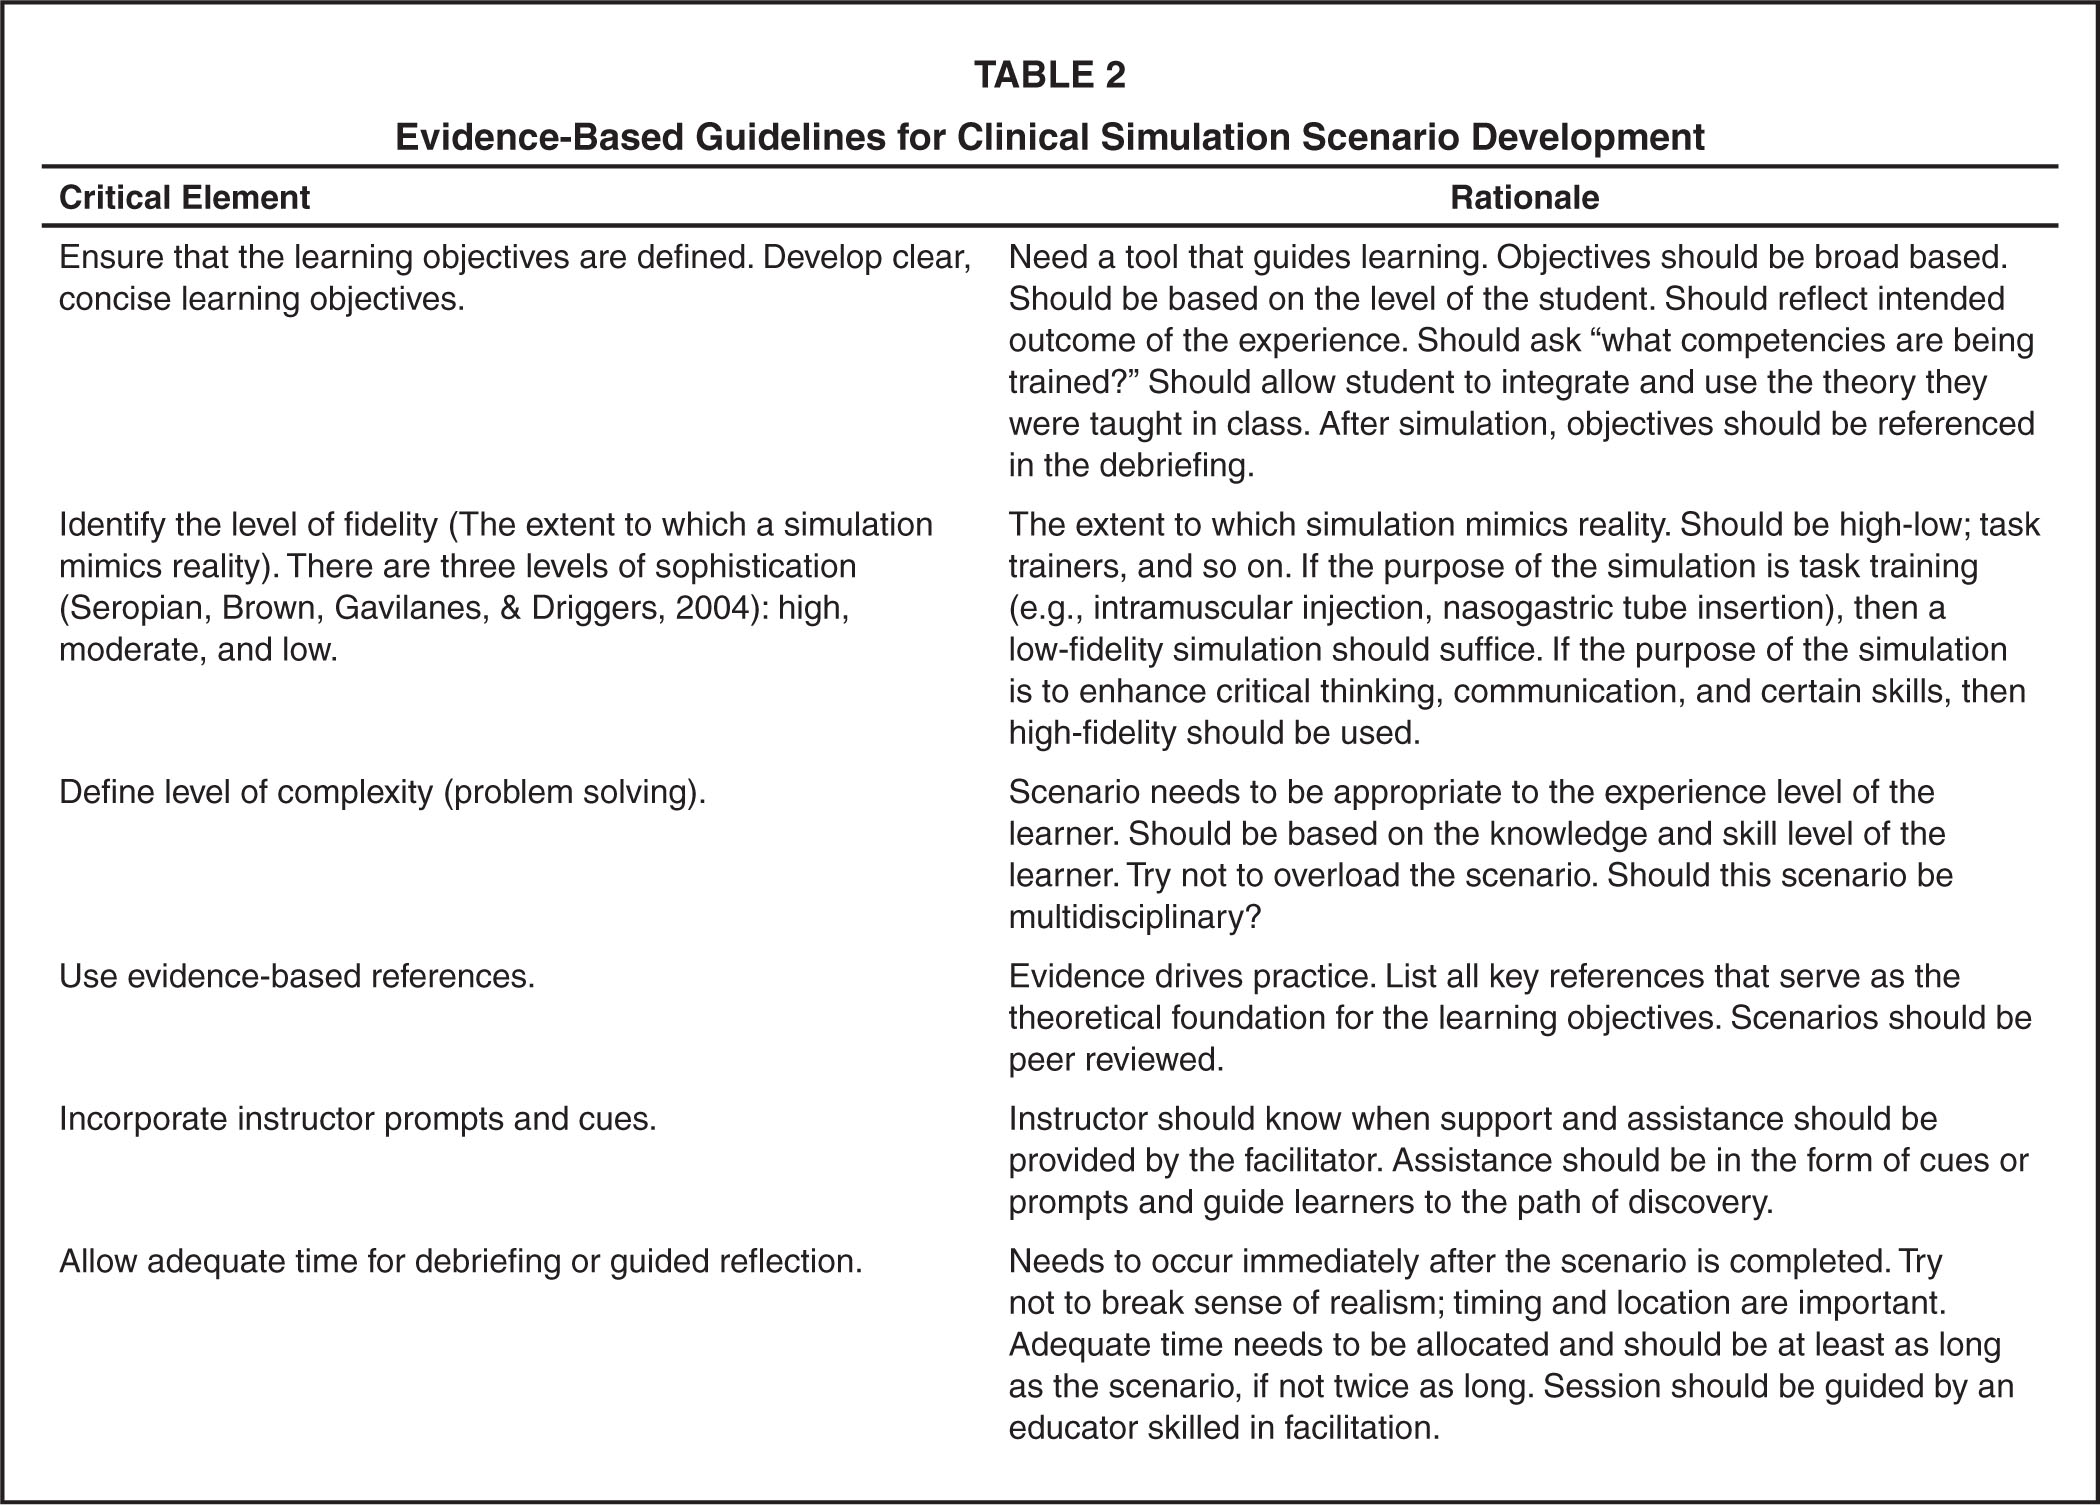 Evidence-Based Guidelines for Clinical Simulation Scenario Development